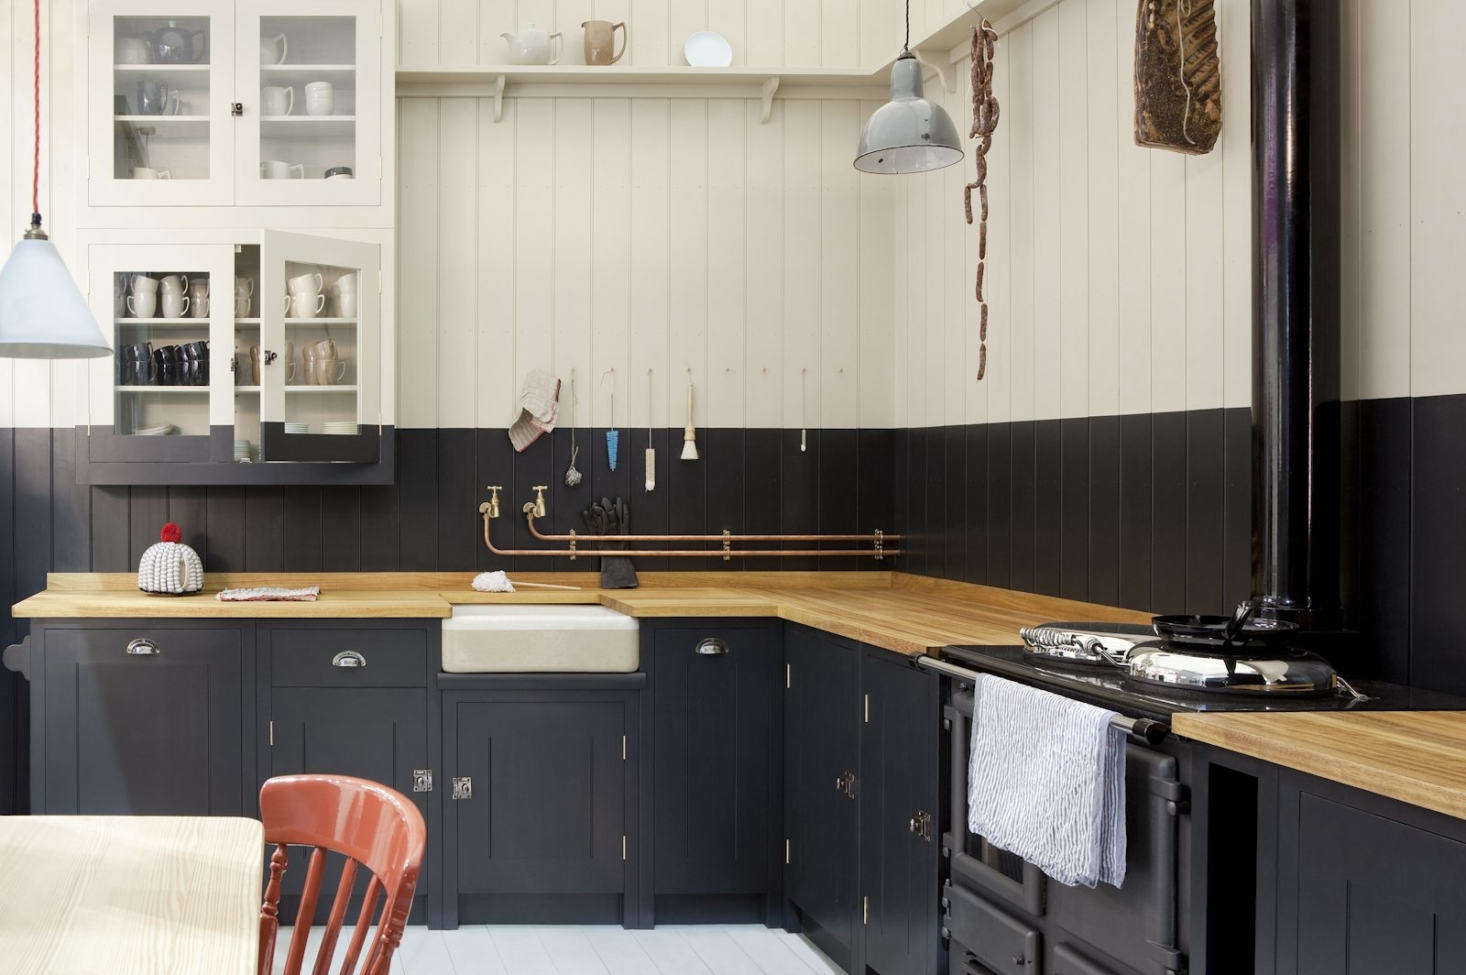 A view of the L-shaped kitchen. For more, seeRemodeling 101: The L-Shaped Kitchen.